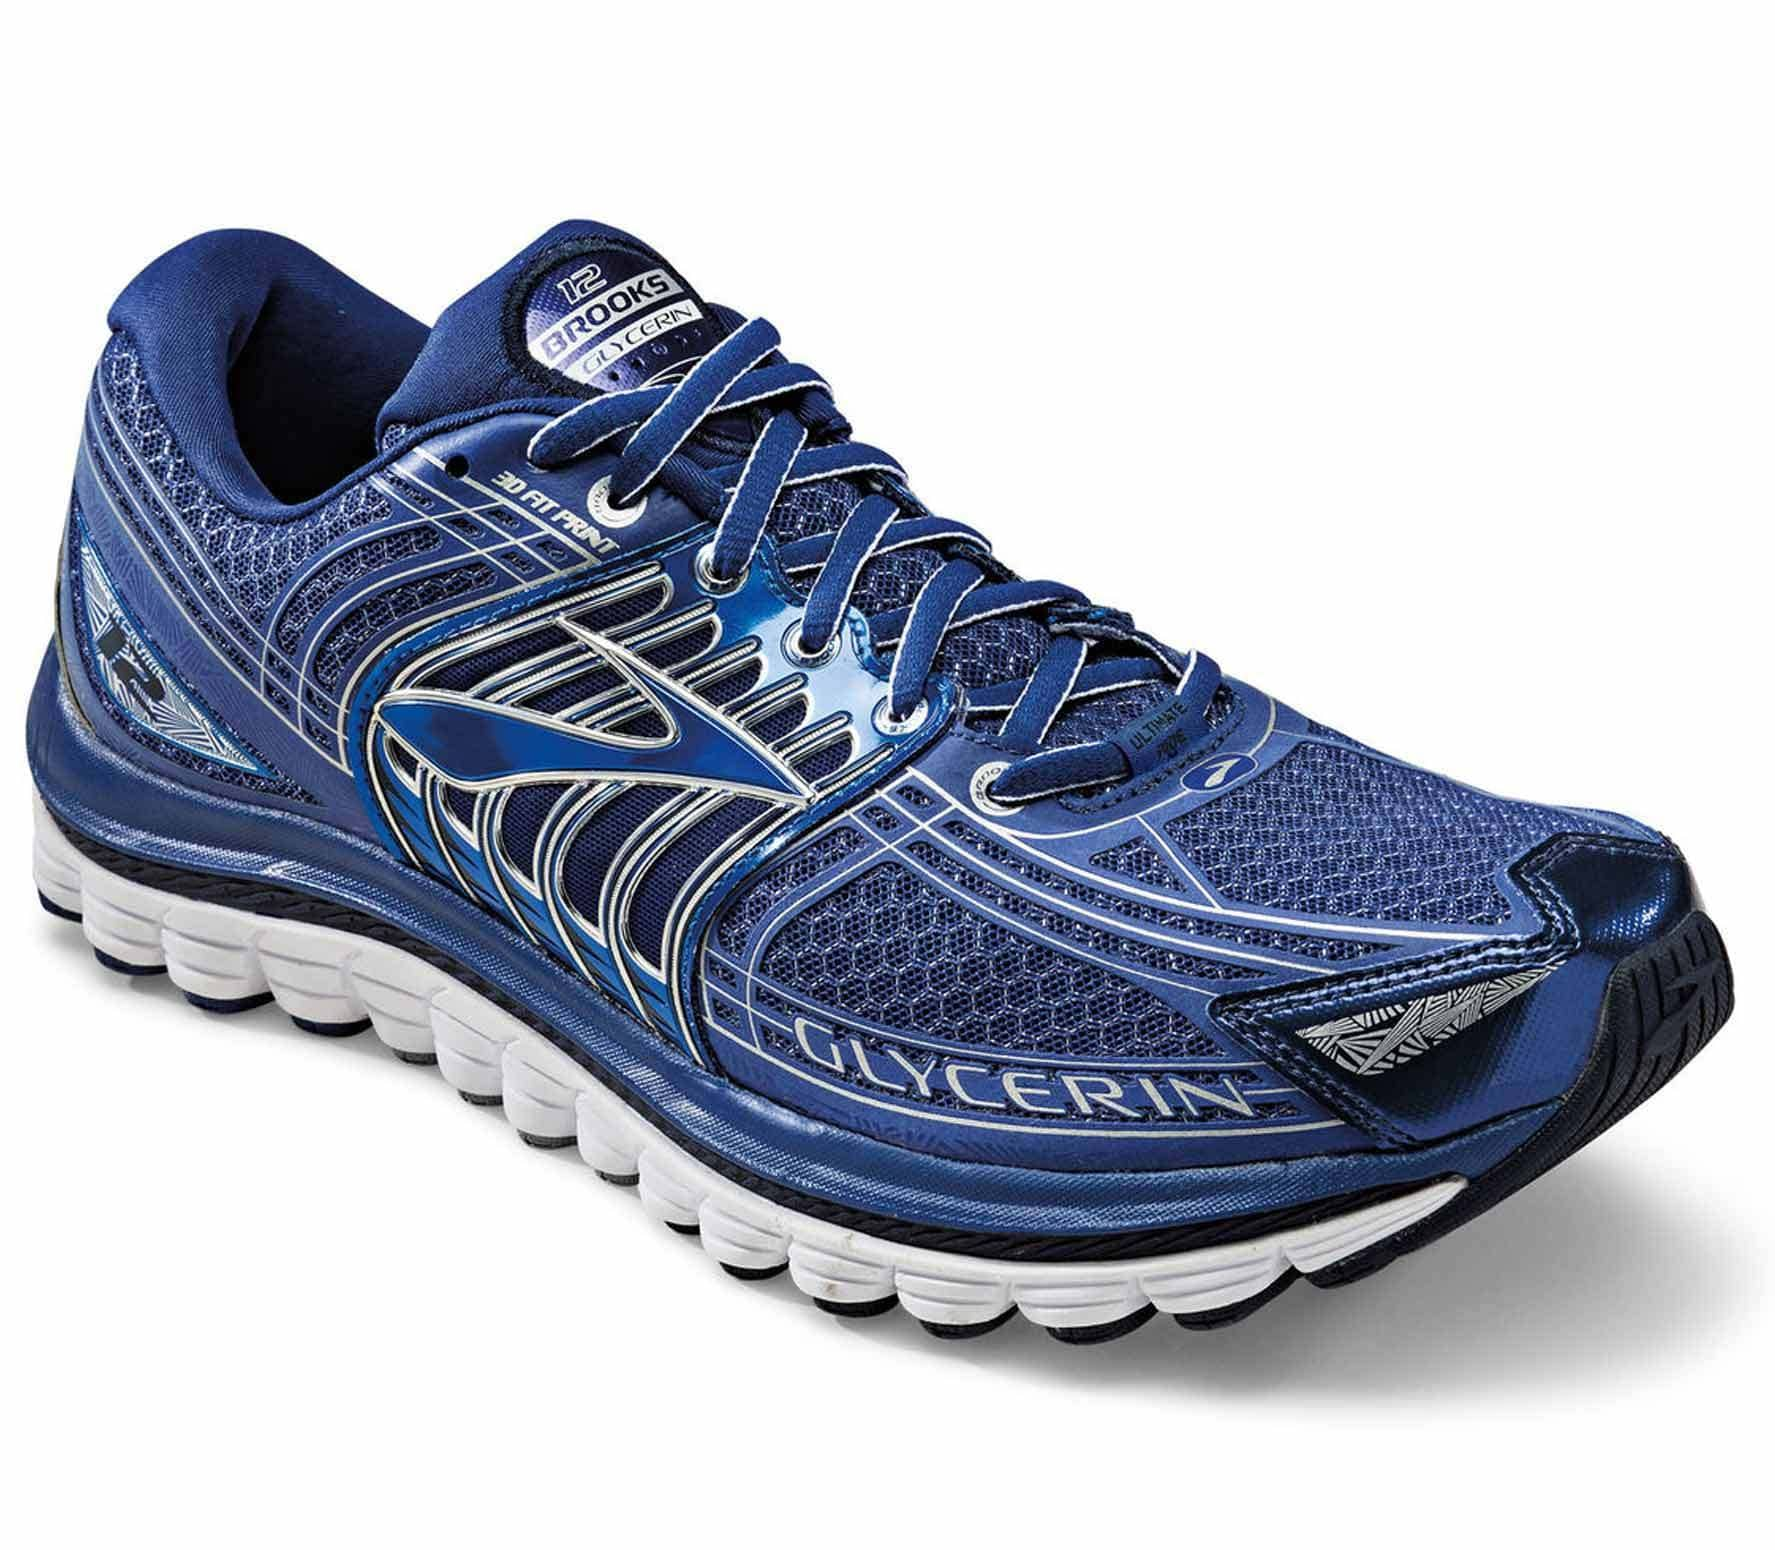 c2e5ac9365f17 Brooks - Glycerin 12 men s running shoes (blue silver) - buy it at ...